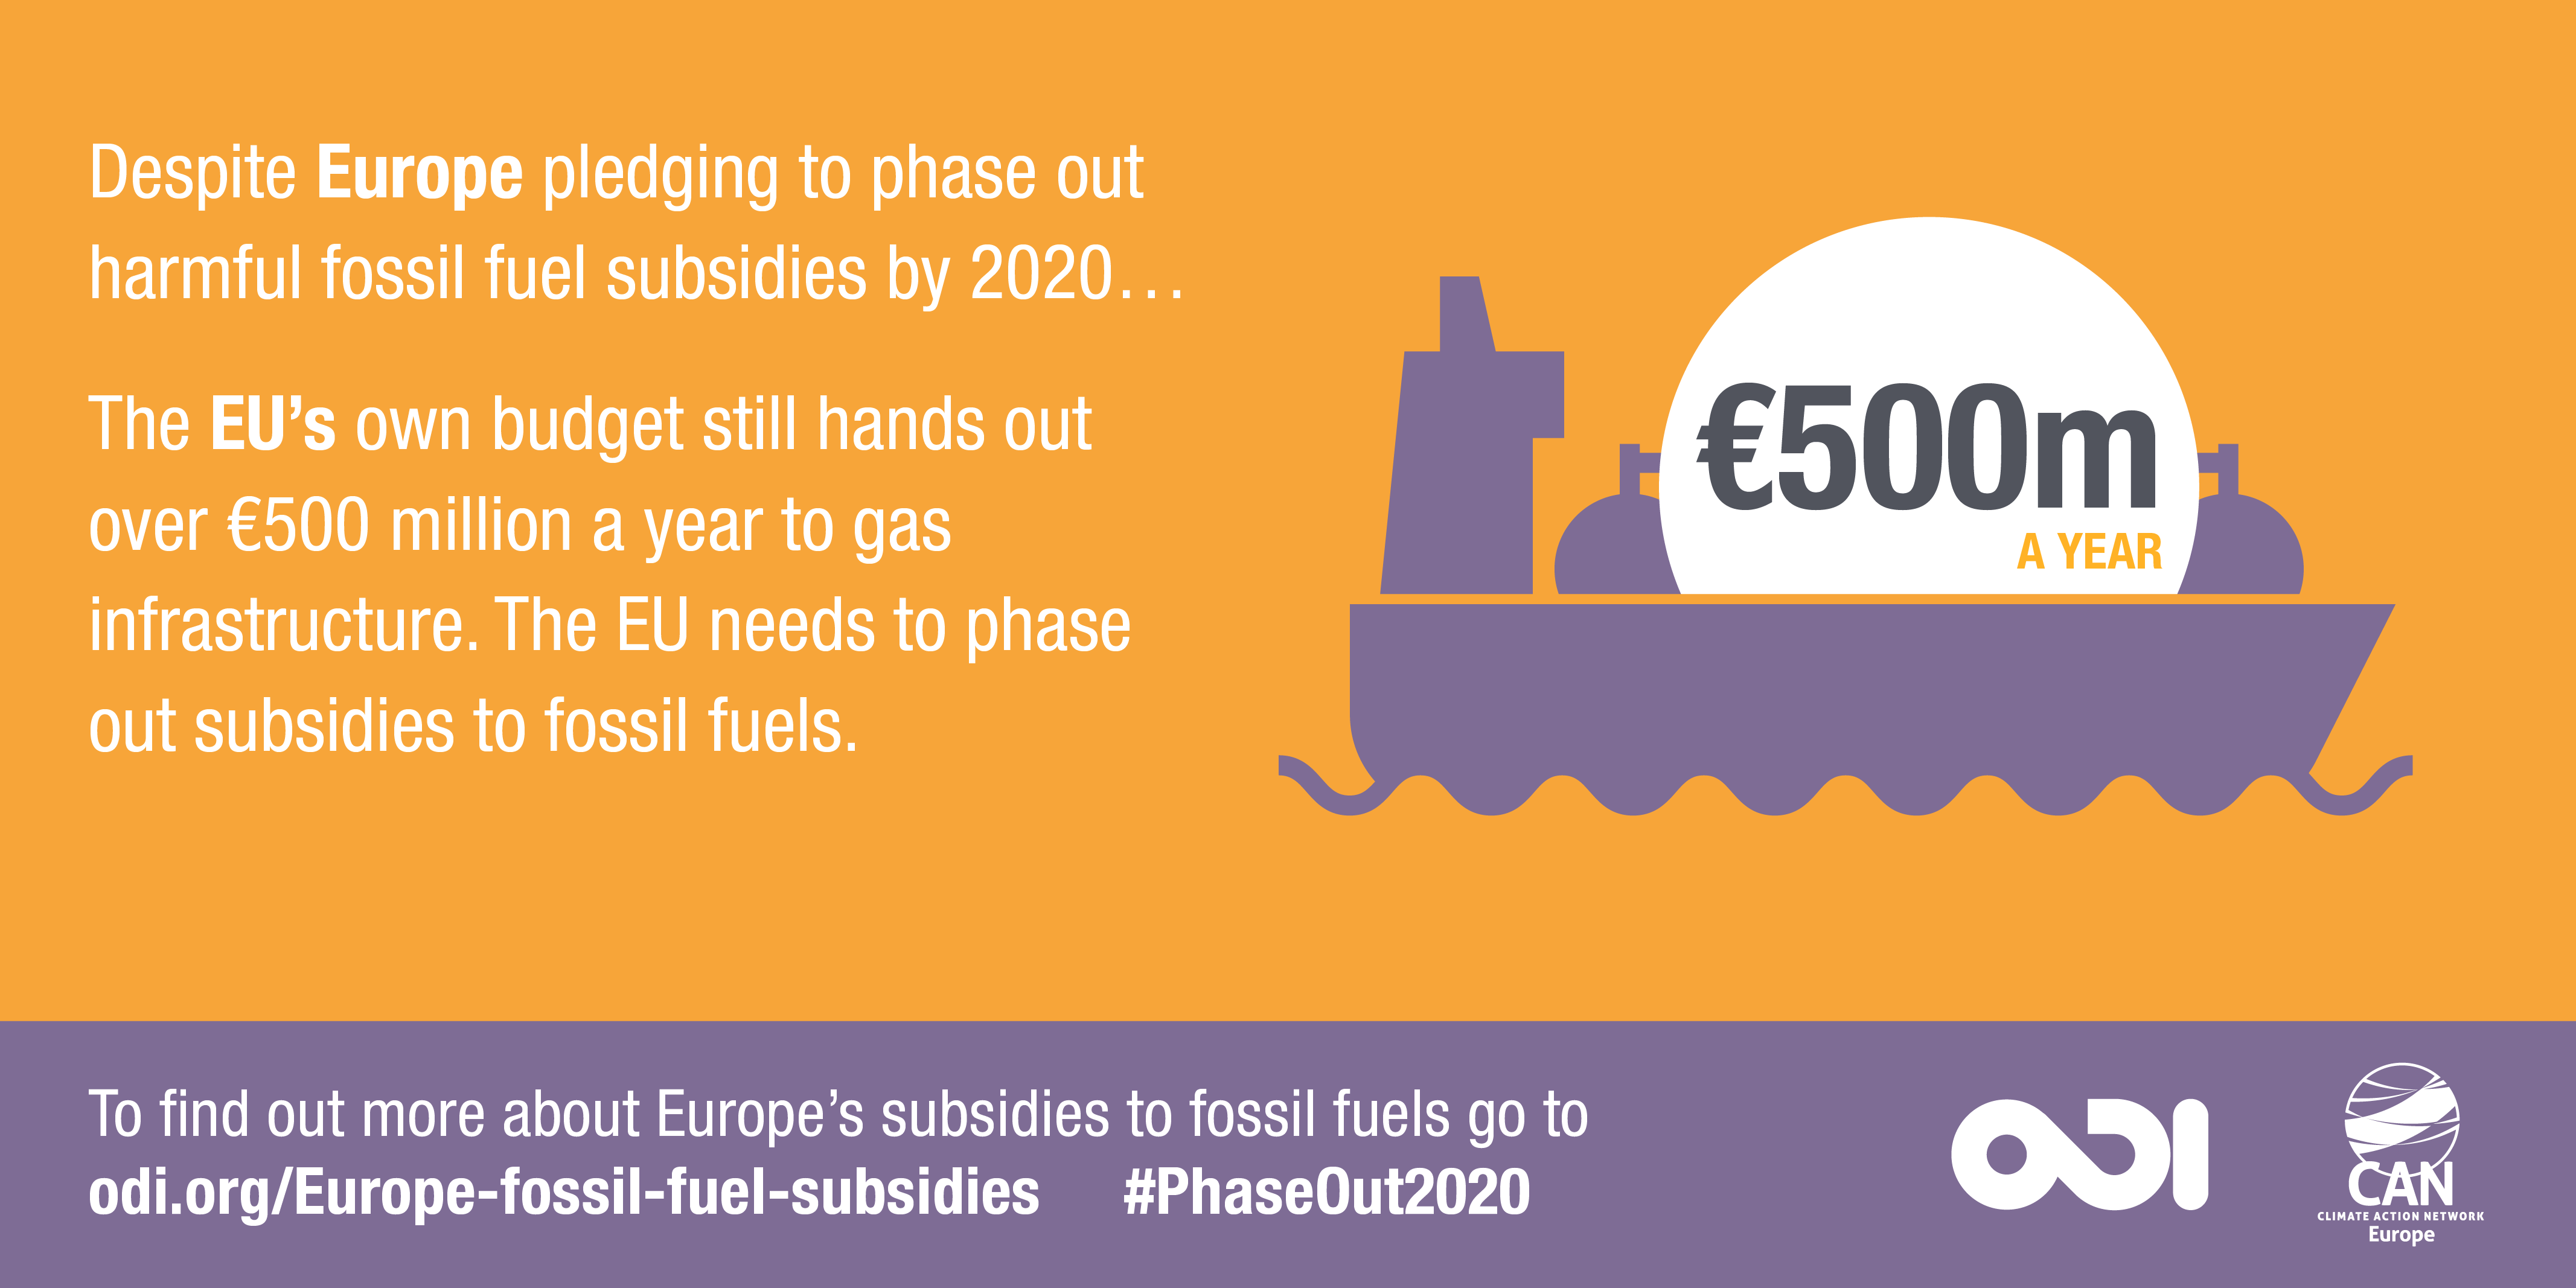 The EU's own budget still hands out over €500 million a year to gas infrastructure. Image: Overseas Development Institute.